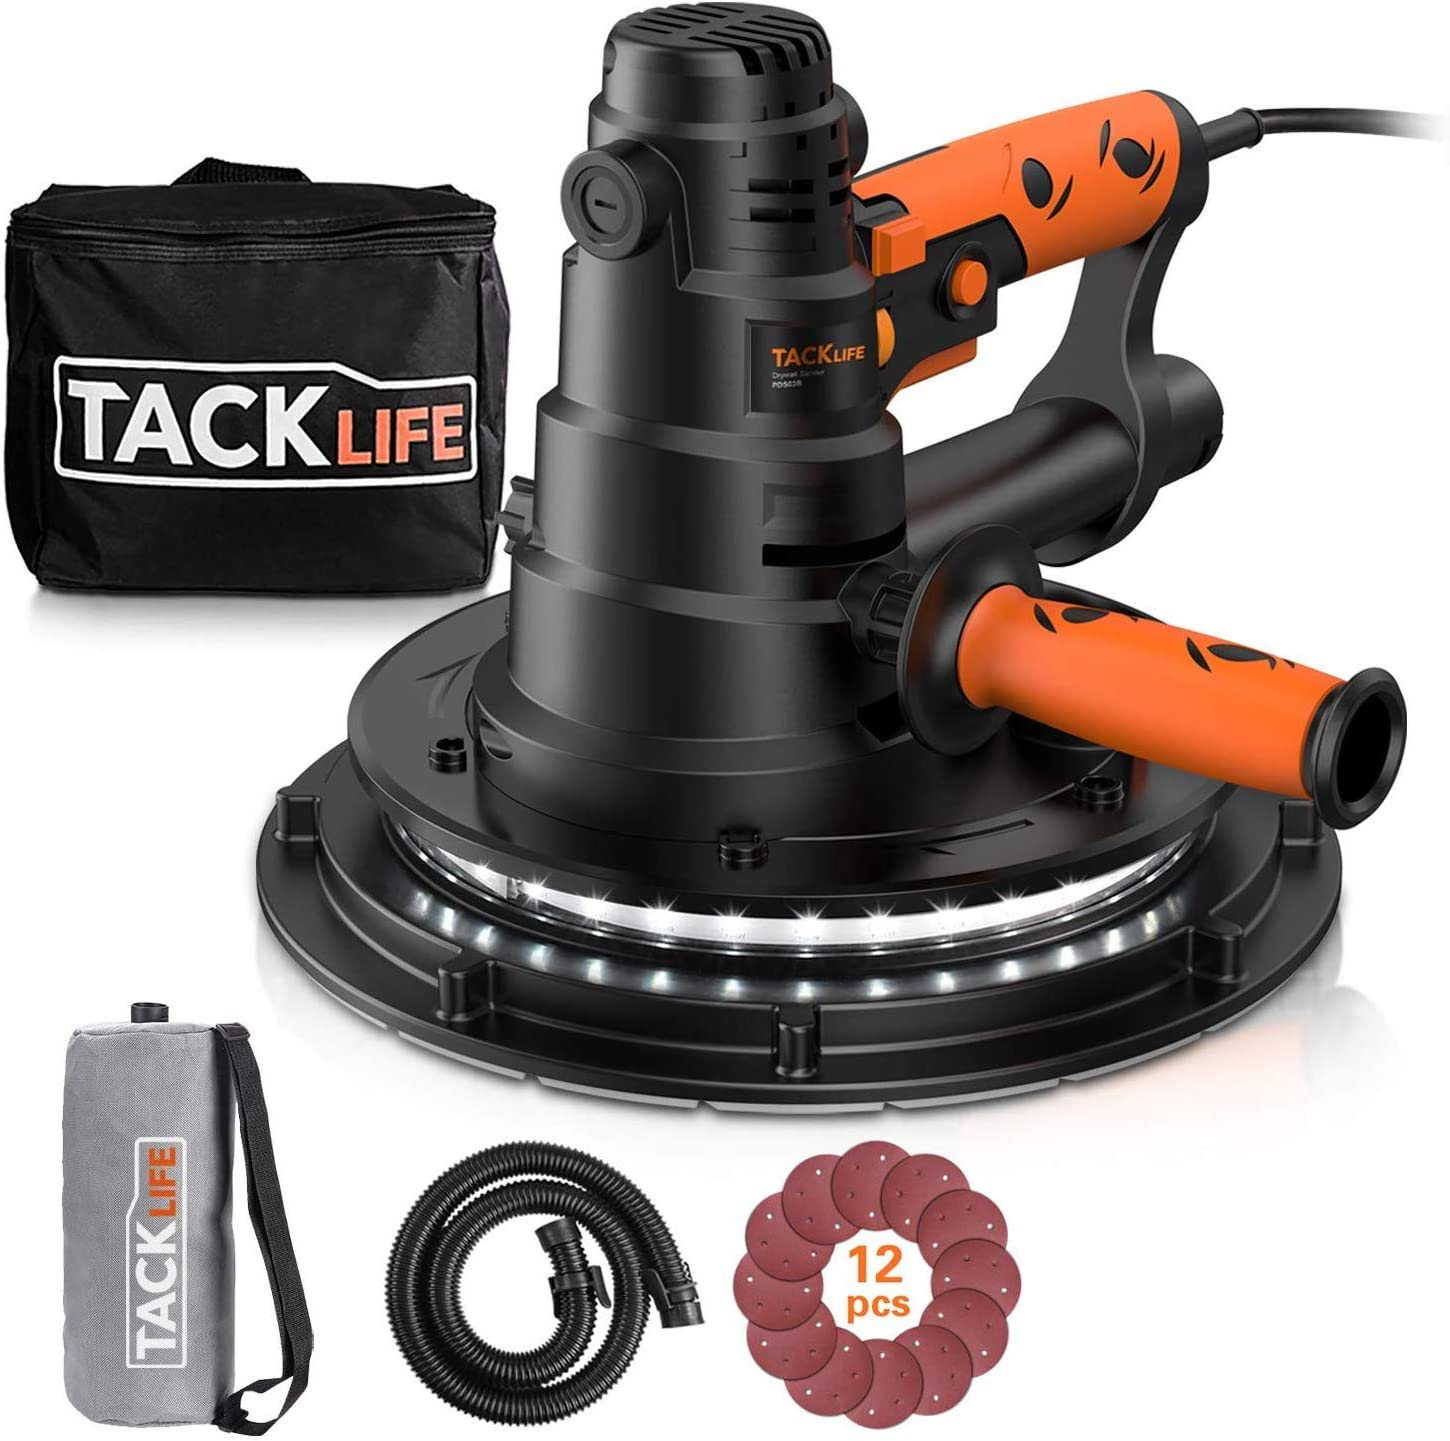 PDS03B 15ft Cable Variable Speed,Automatic Vacuum System /& LED Light 12 Pcs Sanding Discs and a Carry Bag TACKLIFE Handheld Drywall Sander 6.7A Electric Drywall Sander with Dust Collection System